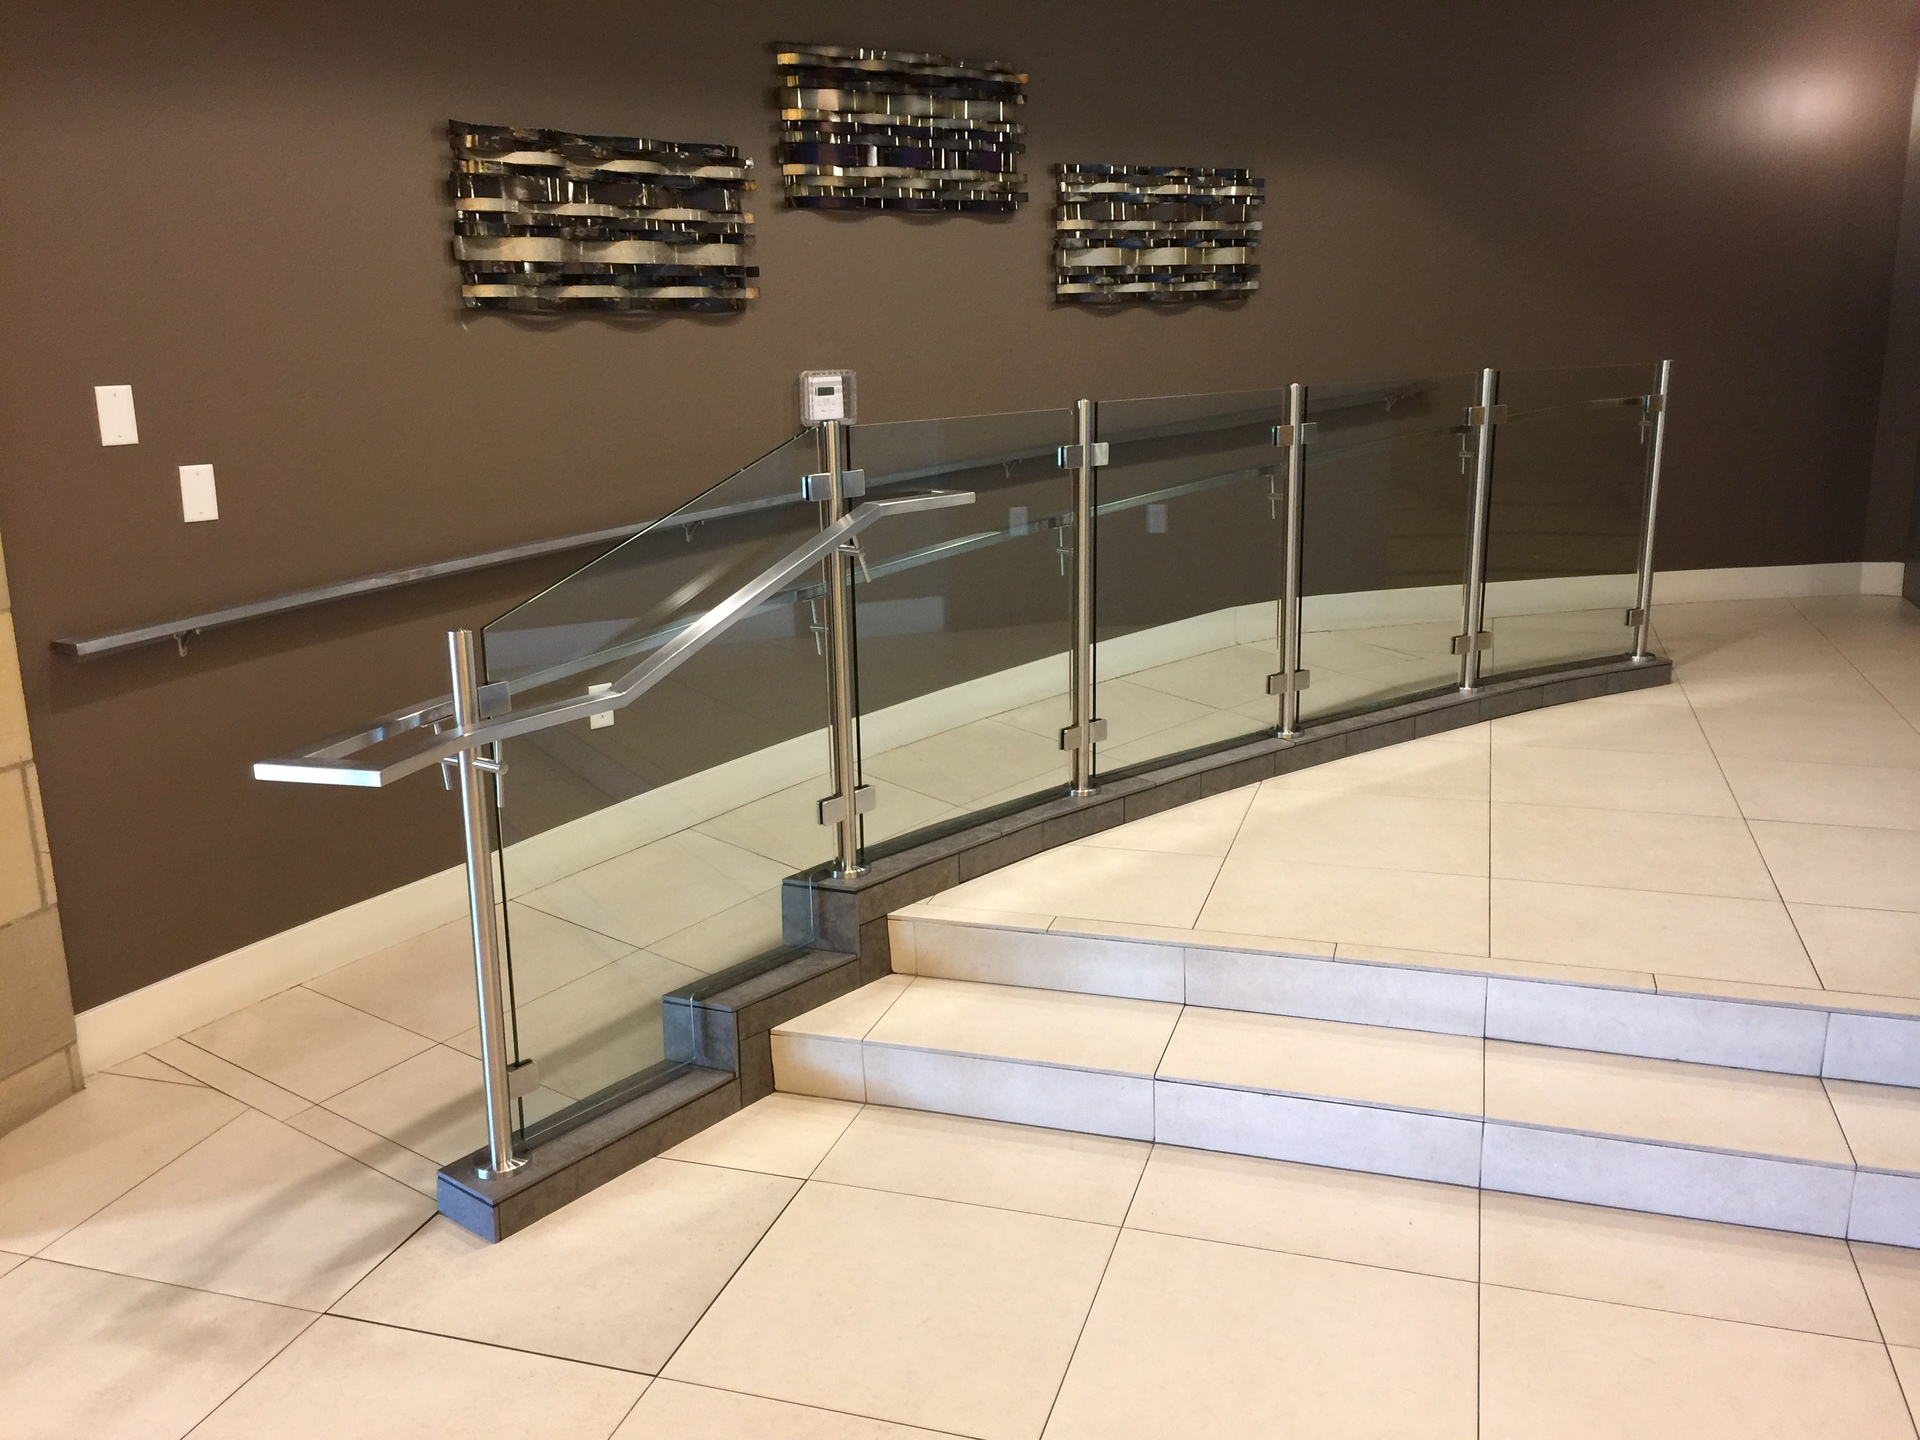 Denver Glass Interiors fabricated, measured and installed this custom fabricated glass railings.